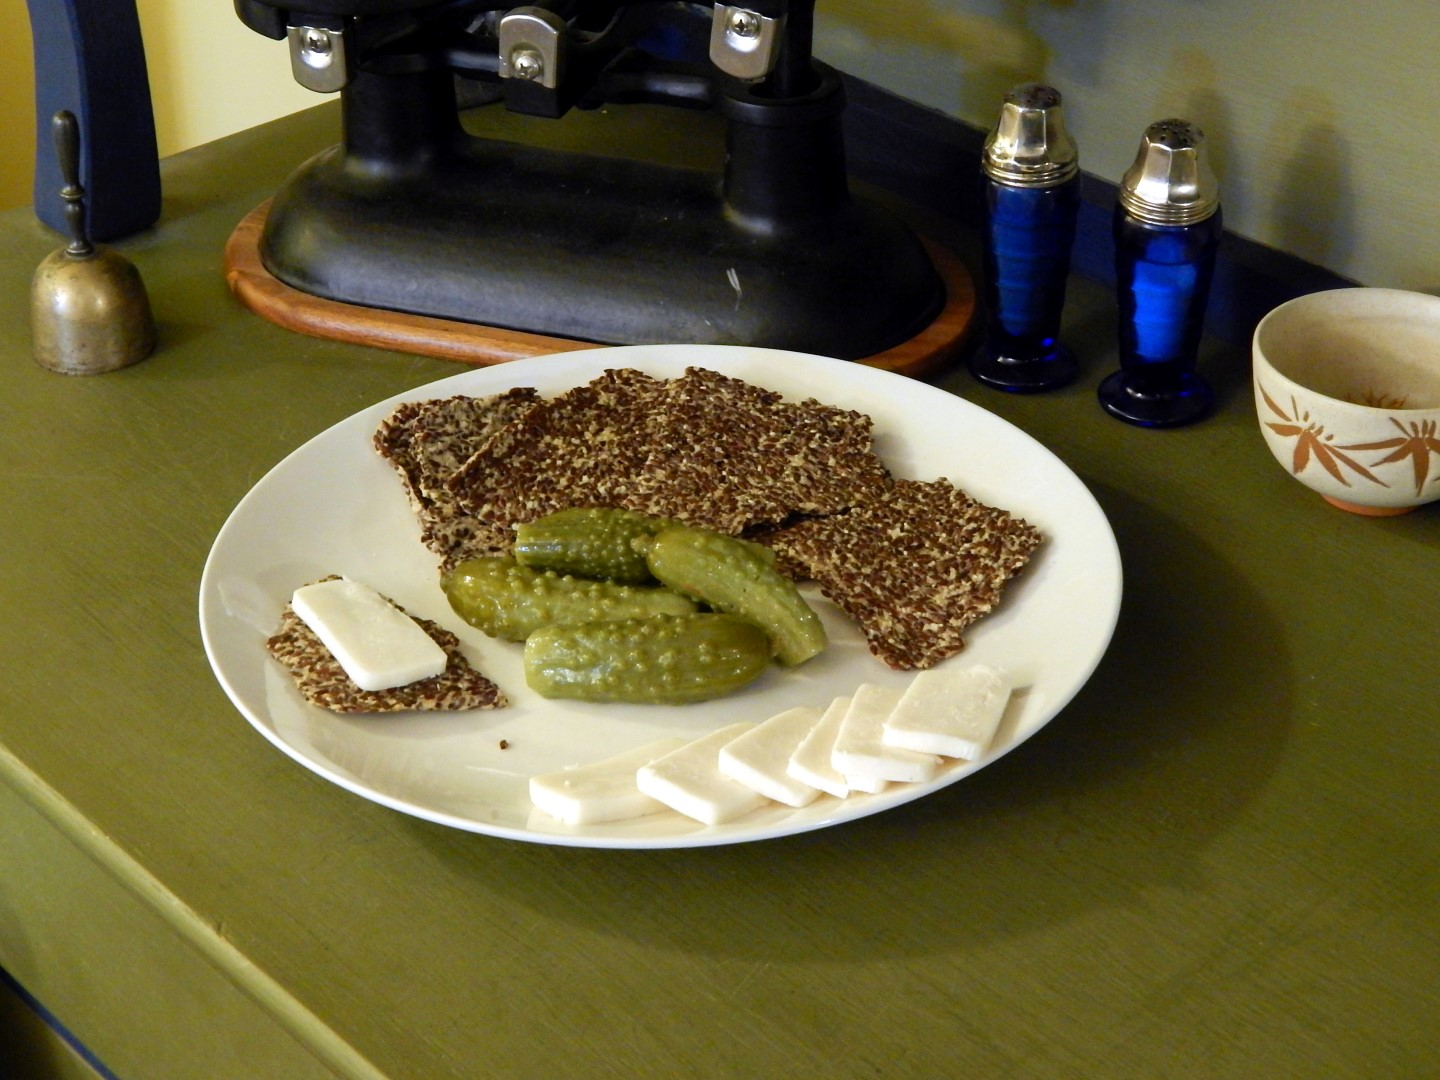 Plate with seedy crackers, pickles and cheese.